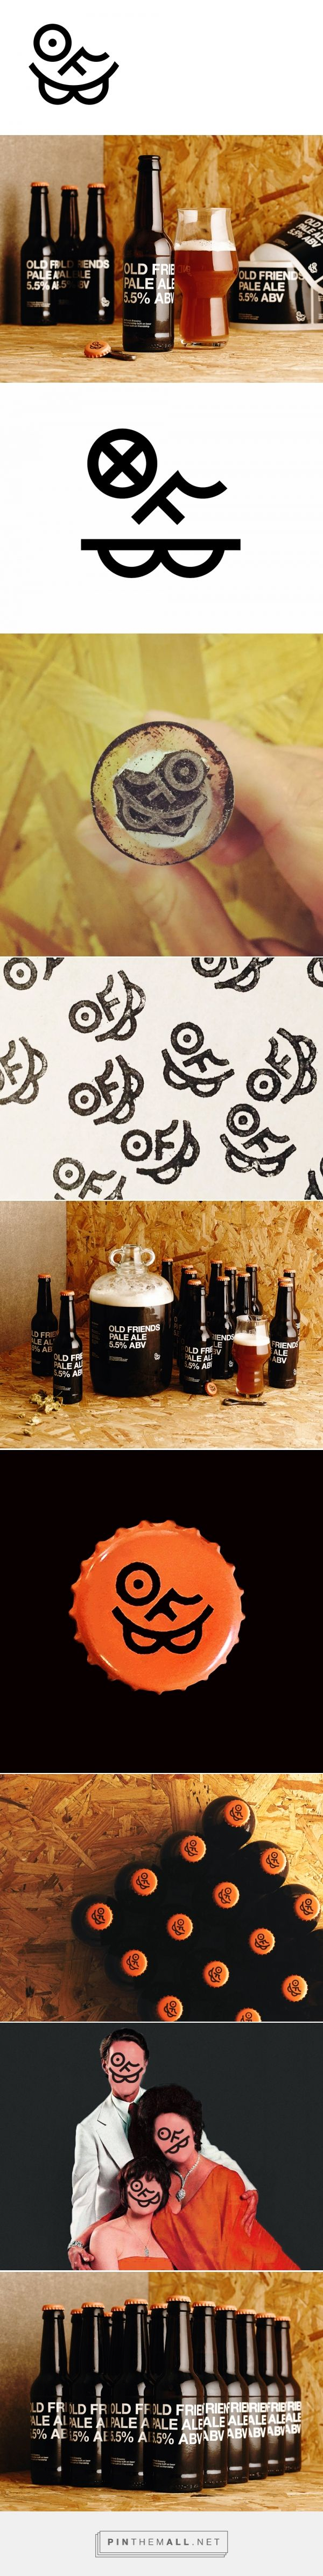 Old Friends Brewery (OFB), microbrewery in Cambridge (UK) / by The District / #branding #packaging